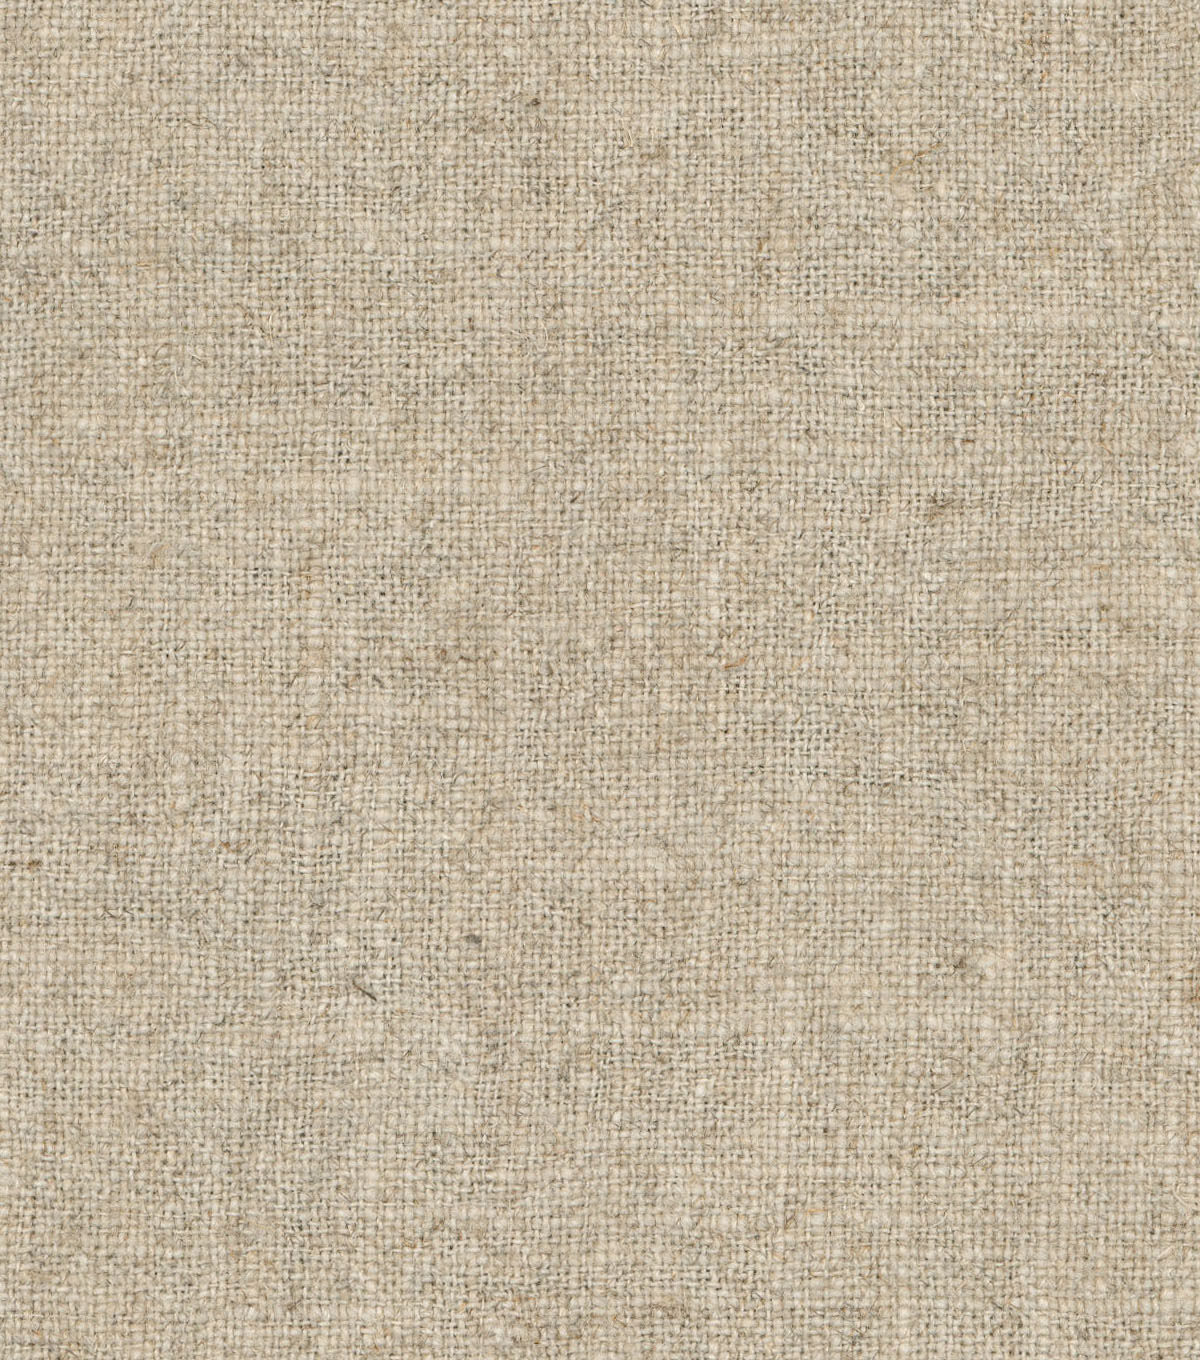 P/K Lifestyles Multi-Purpose Decor Fabric 54\u0027\u0027-Linen Sandrift